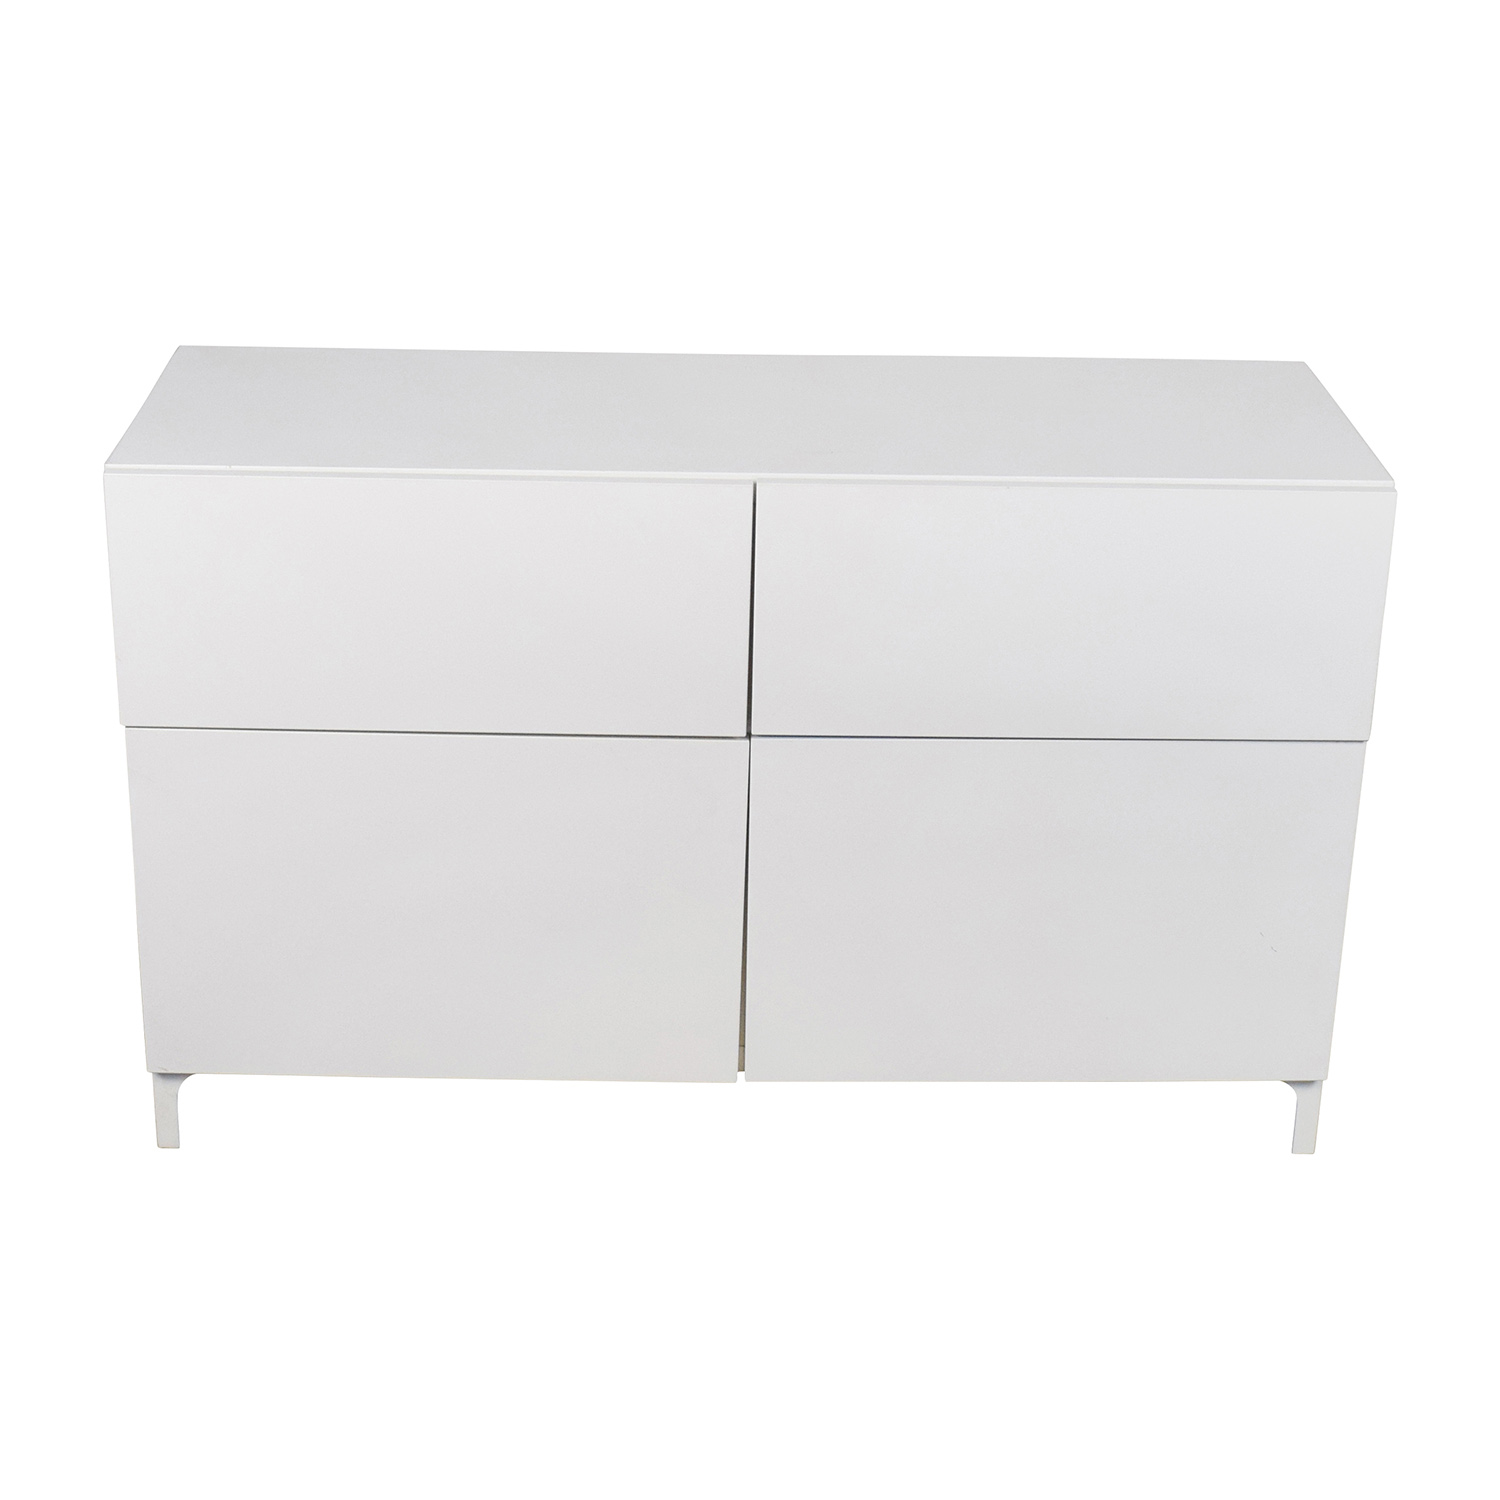 White sideboard cabinet ikea ideas drawer filing cabinet for White gloss sideboards at ikea